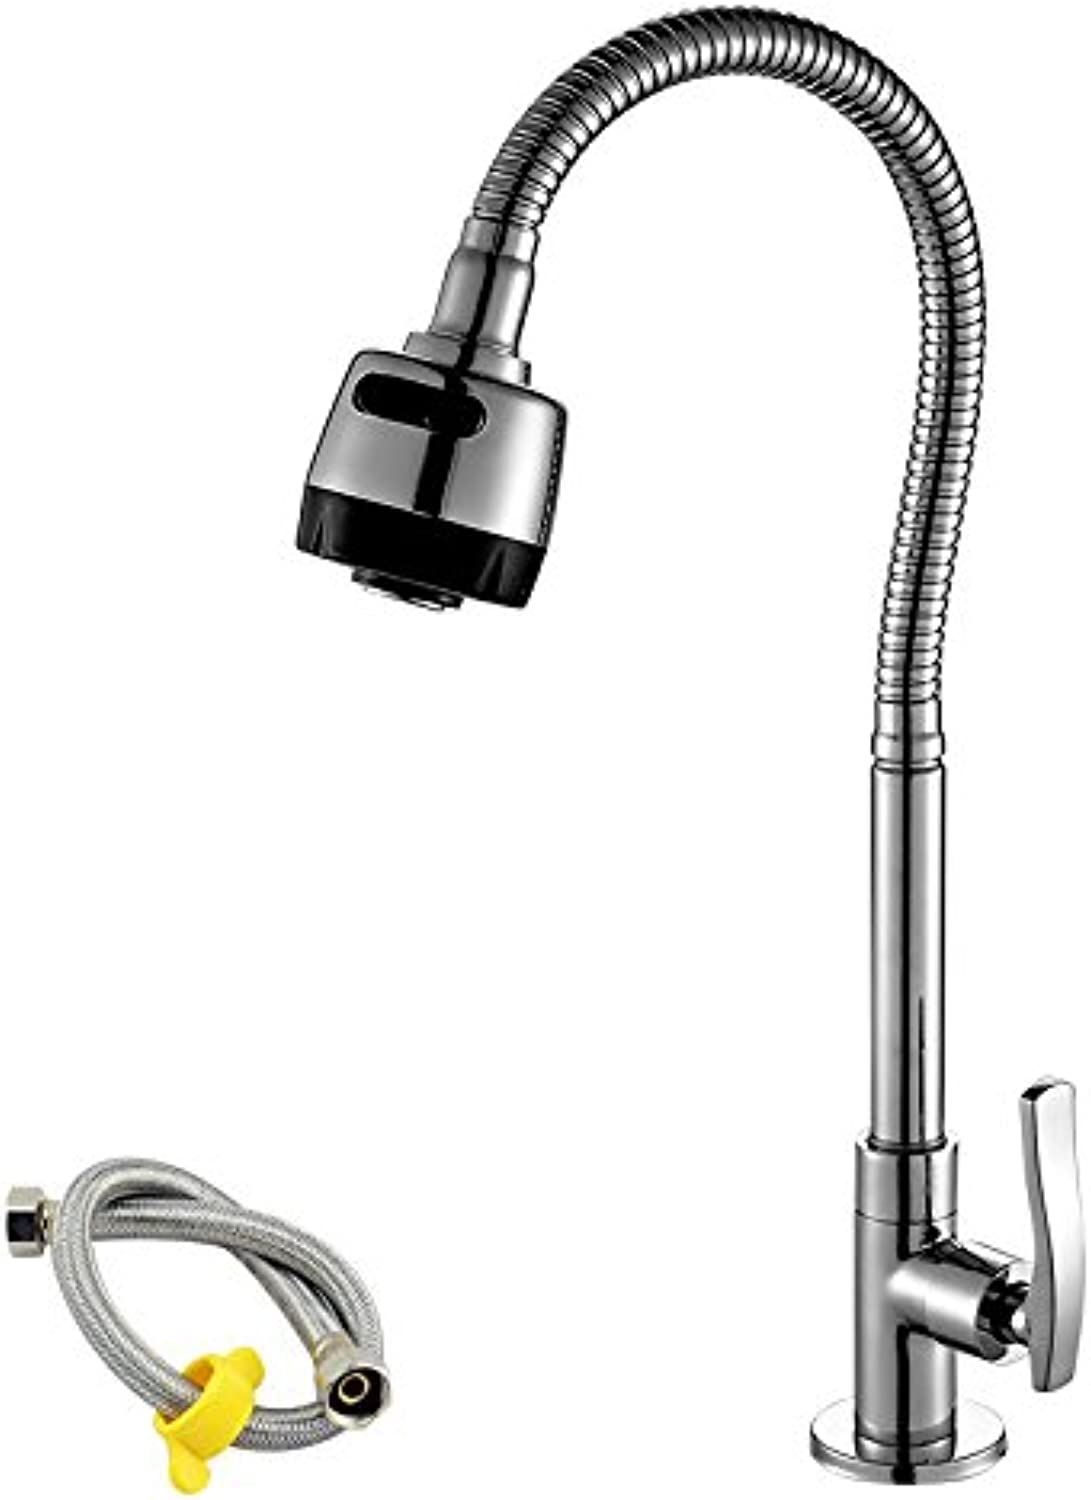 Gyps Faucet Basin Mixer Tap Waterfall Faucet Antique Bathroom Mixer Bar Mixer Shower Set Tap antique bathroom faucet The Kitchen dish washing basin single cold water laundry pool faucet full copper to